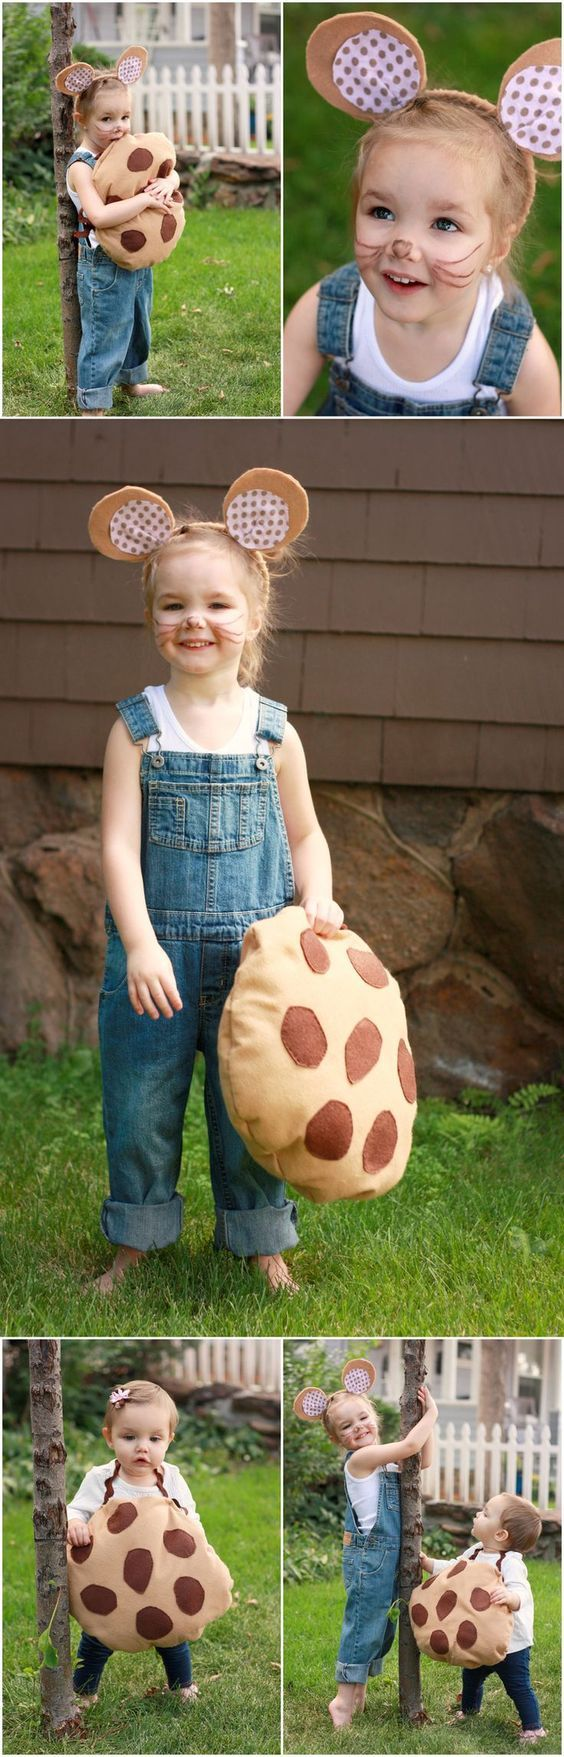 20 diy halloween costumes bebe lectura y carnavales diy halloween costumes ideas darling give a mouse a cookie book character diy halloween costumes via seeker of happiness solutioingenieria Images